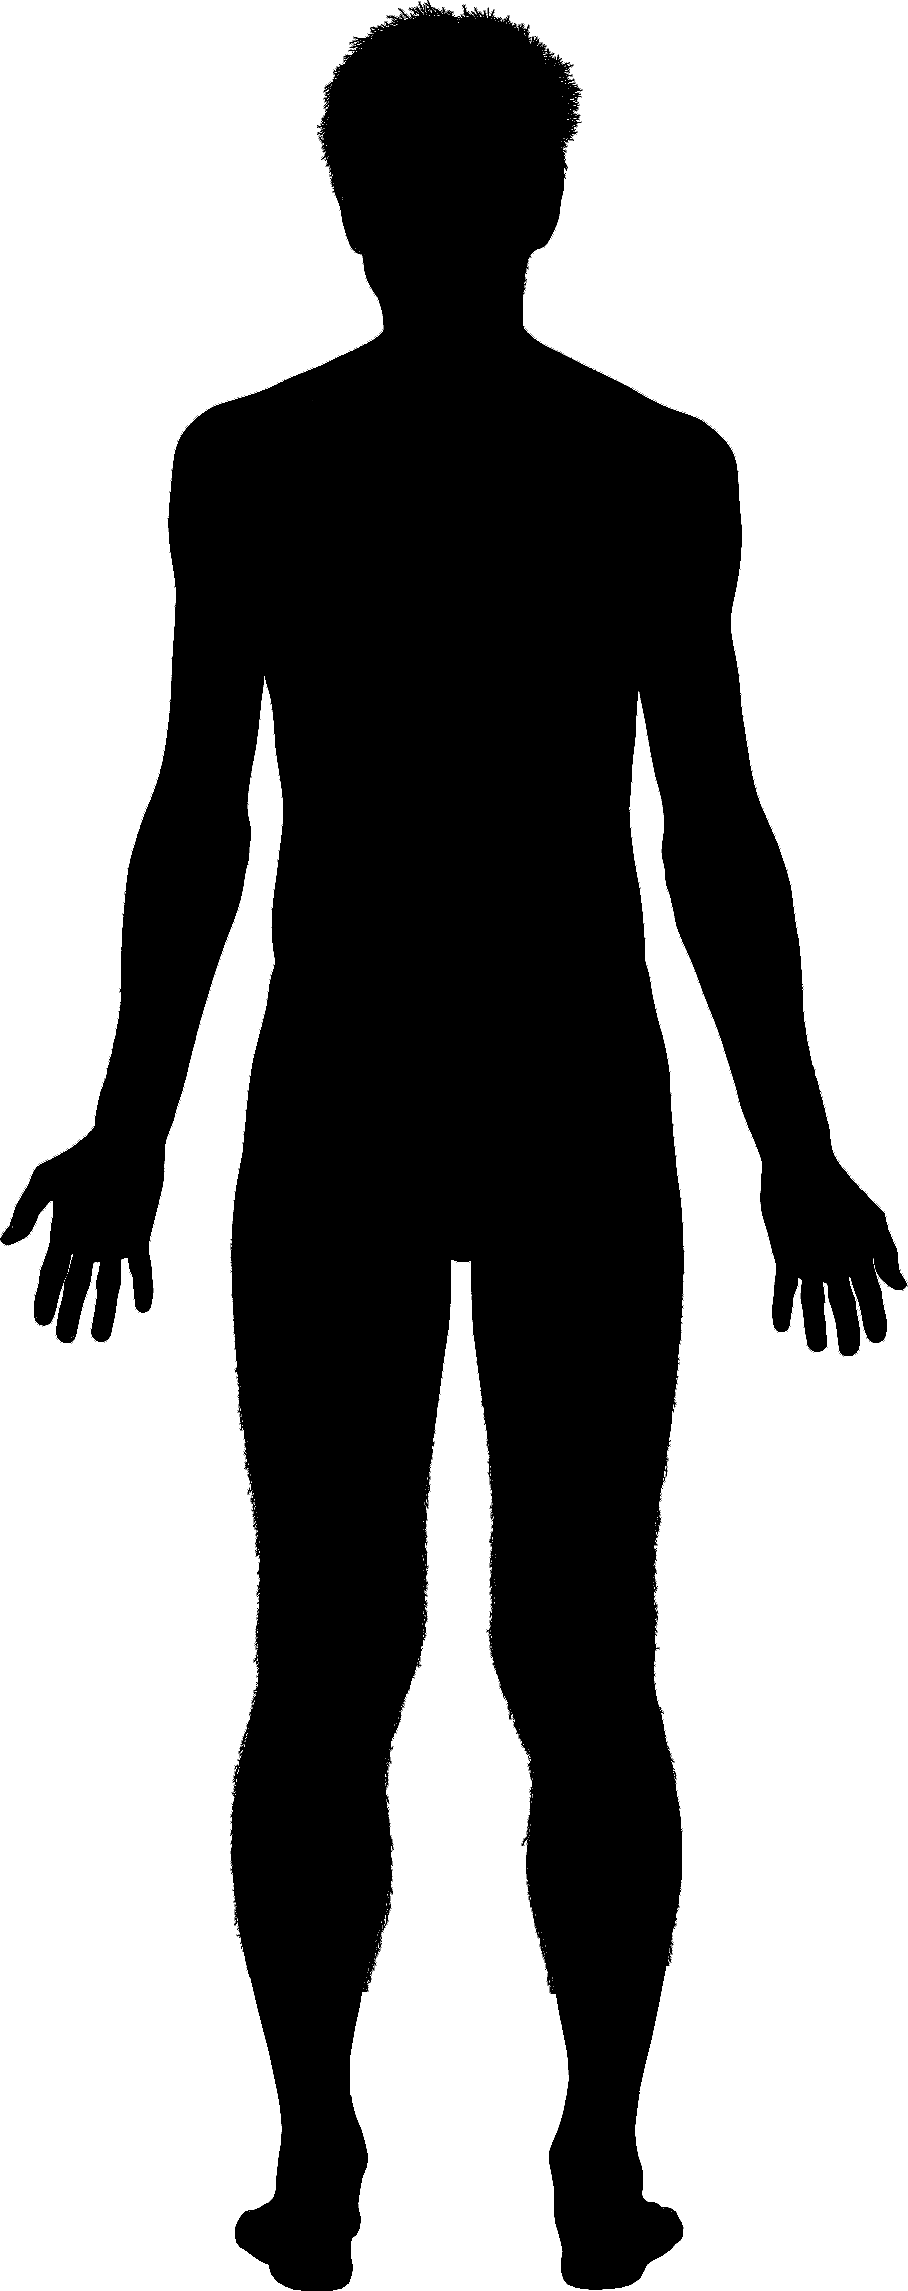 908x2291 Body Outline Png